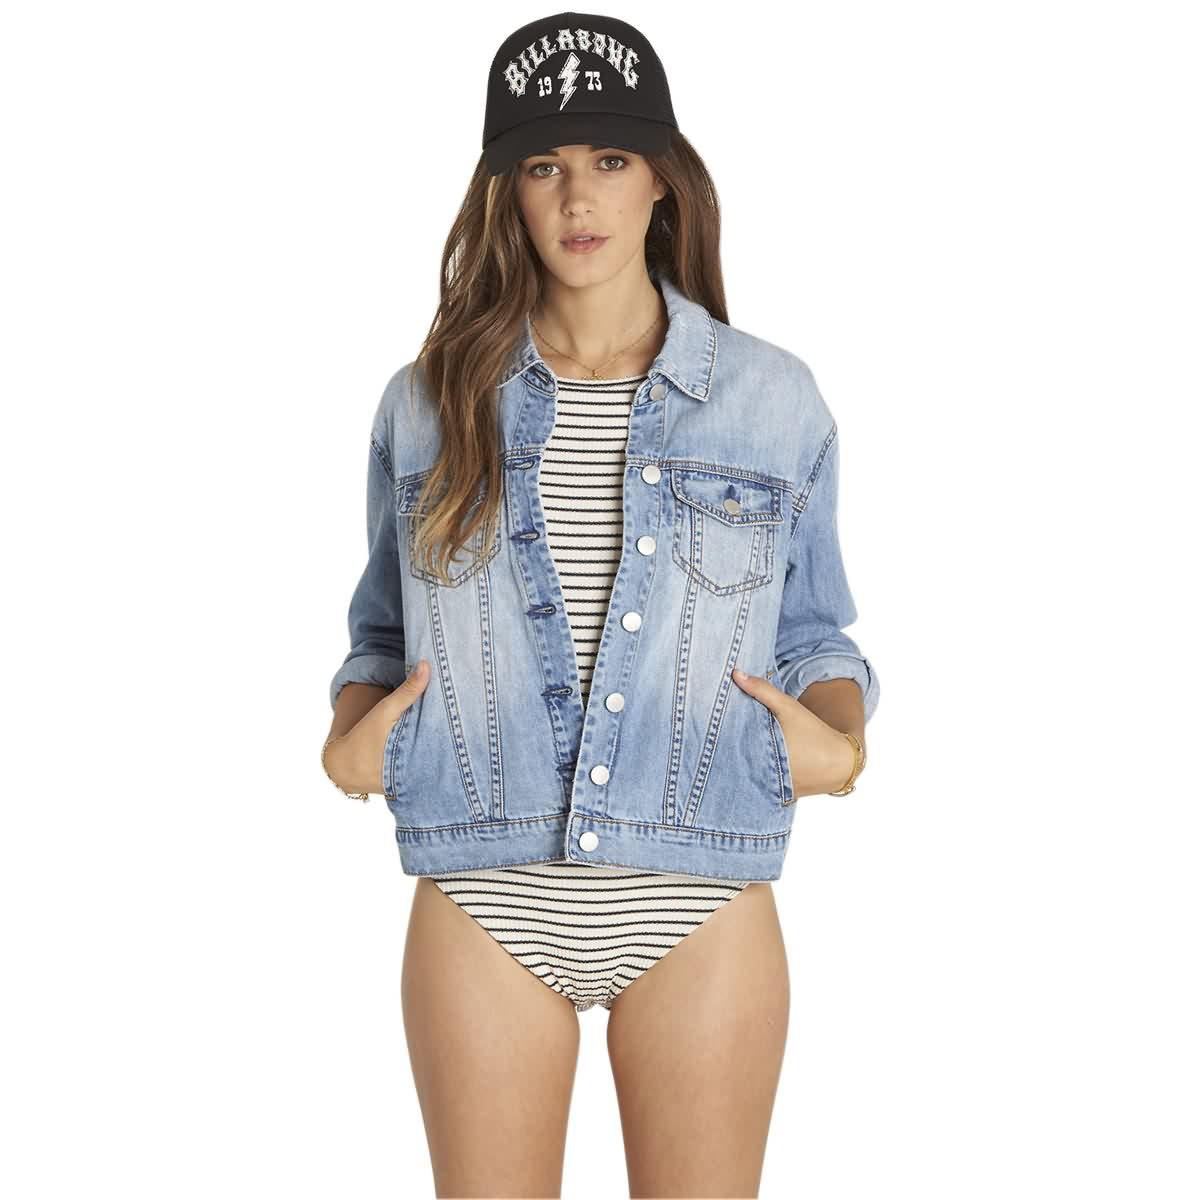 Billabong With The Band Women's Denim Jackets-J715LWIT